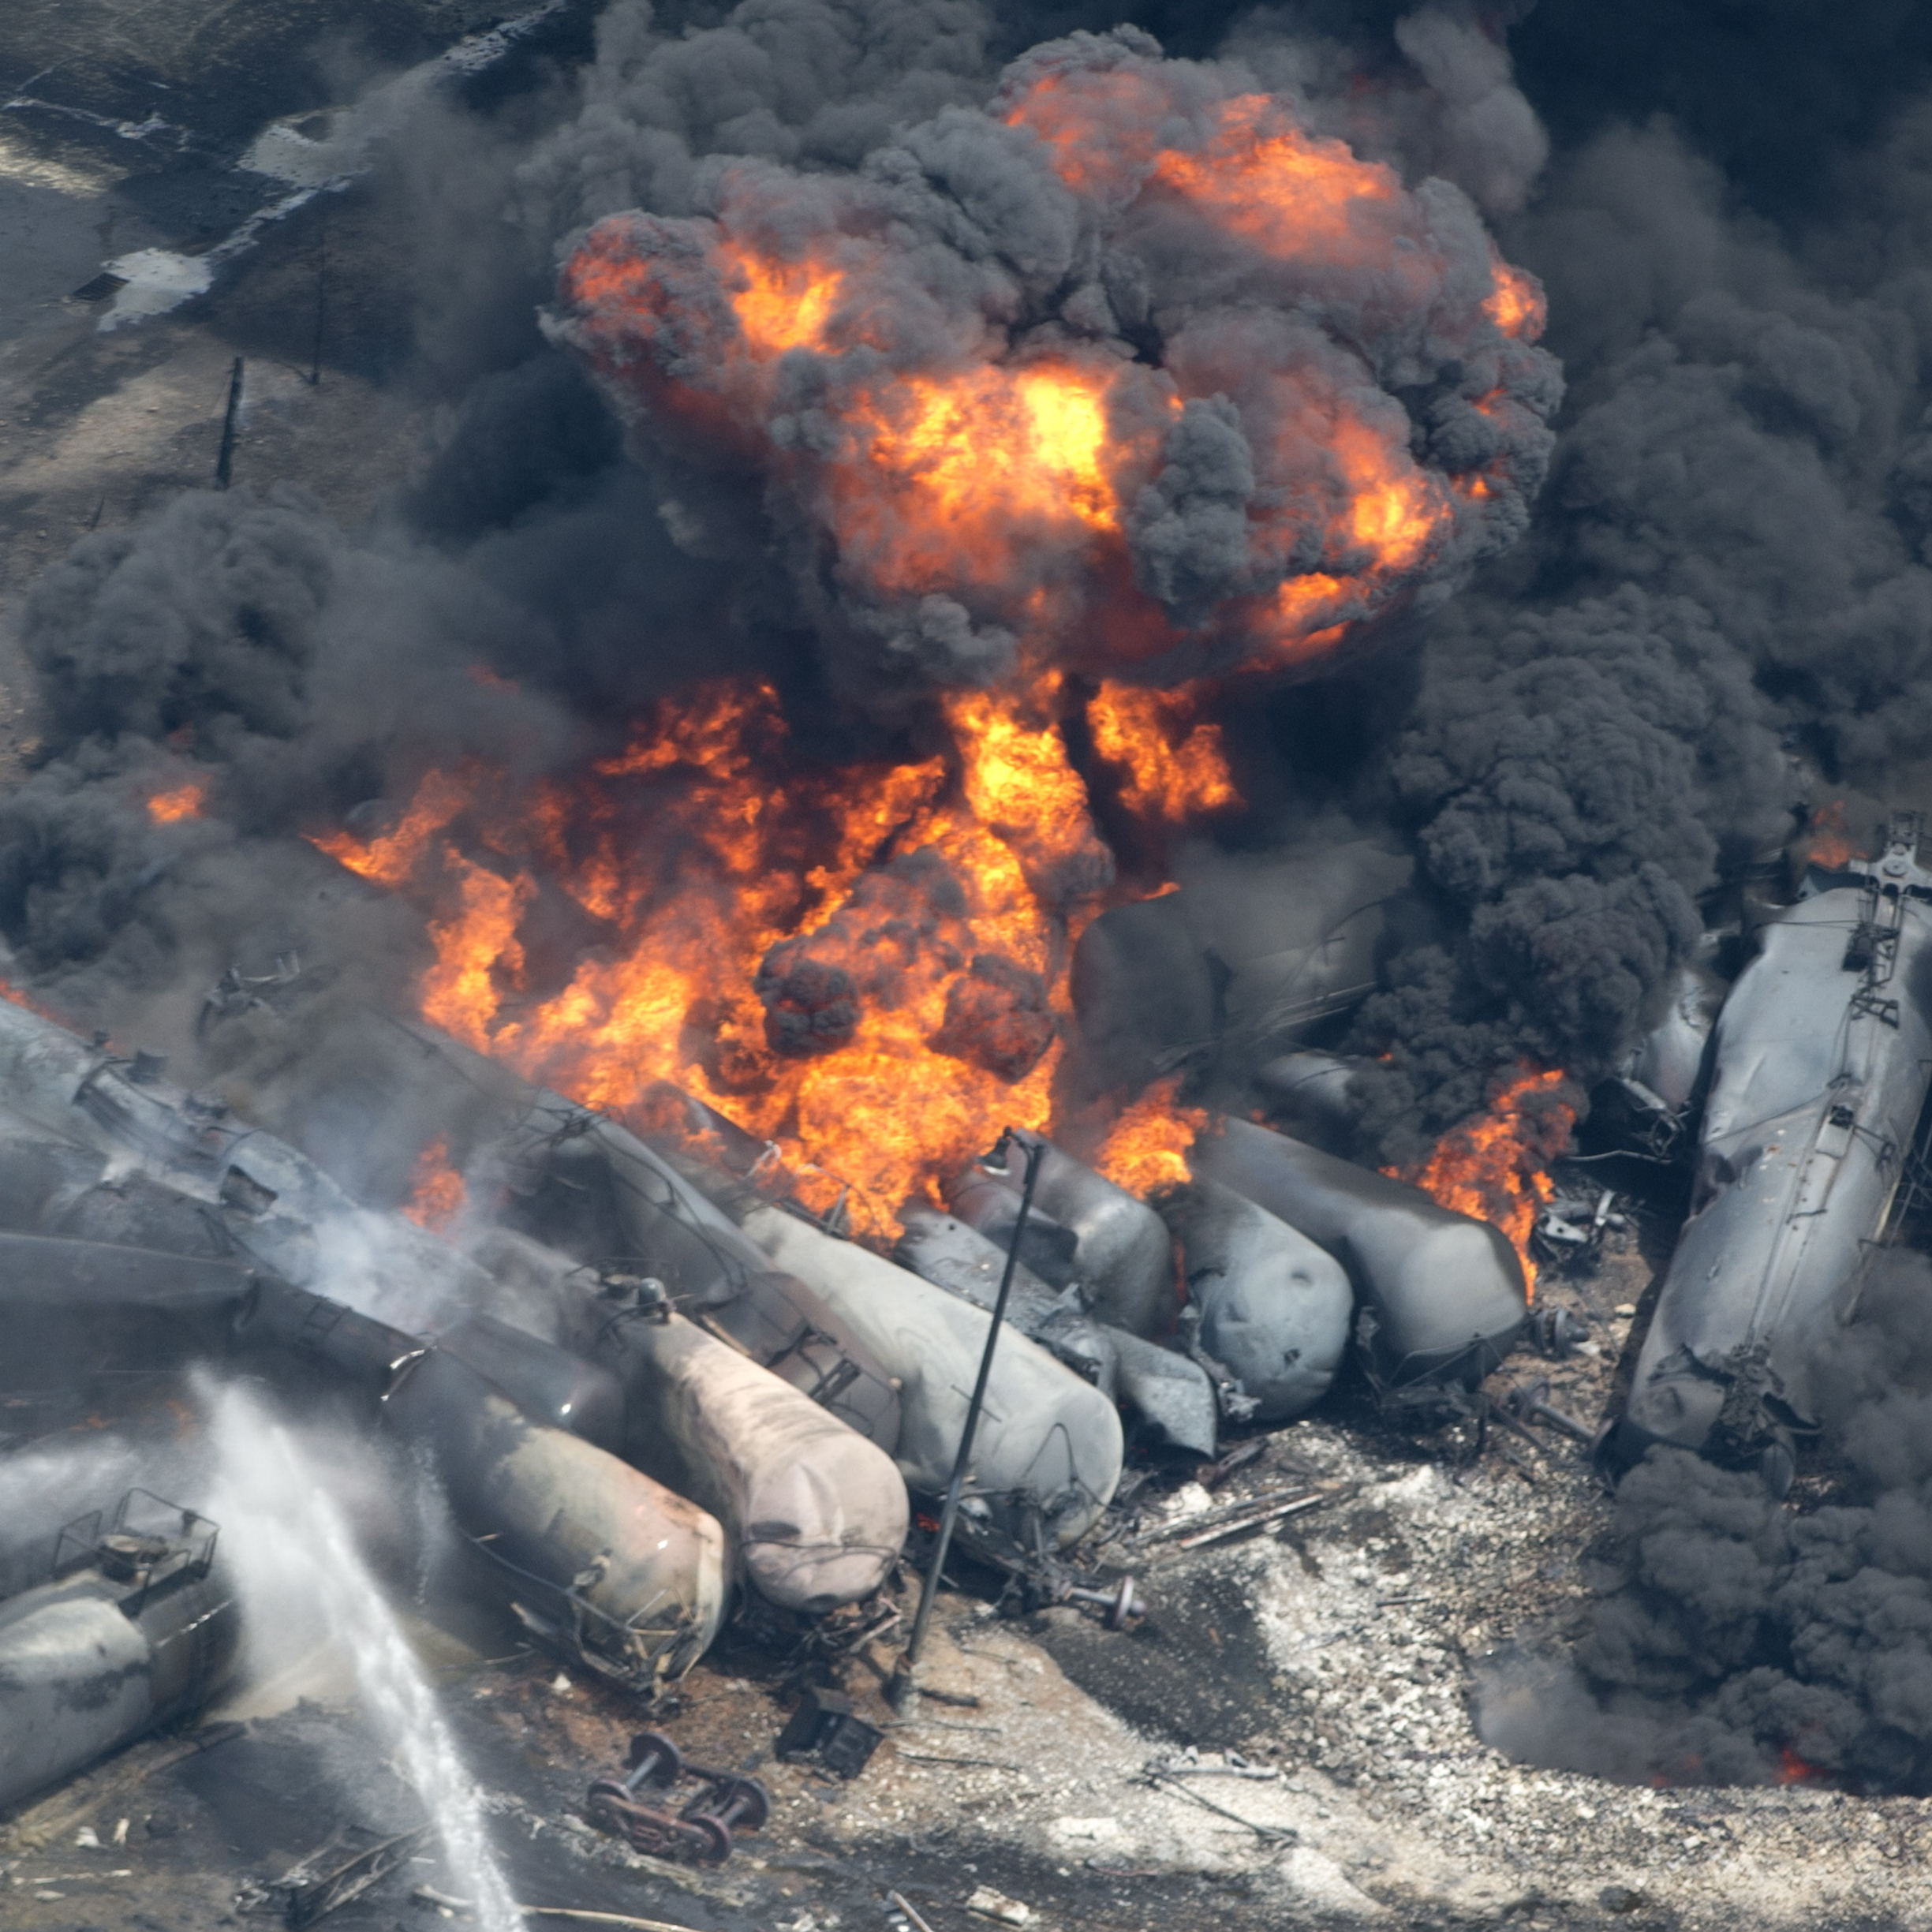 Smoke rises from tanker cars carrying crude oil after a derailment in downtown Lac-Megantic, Quebec, in July.